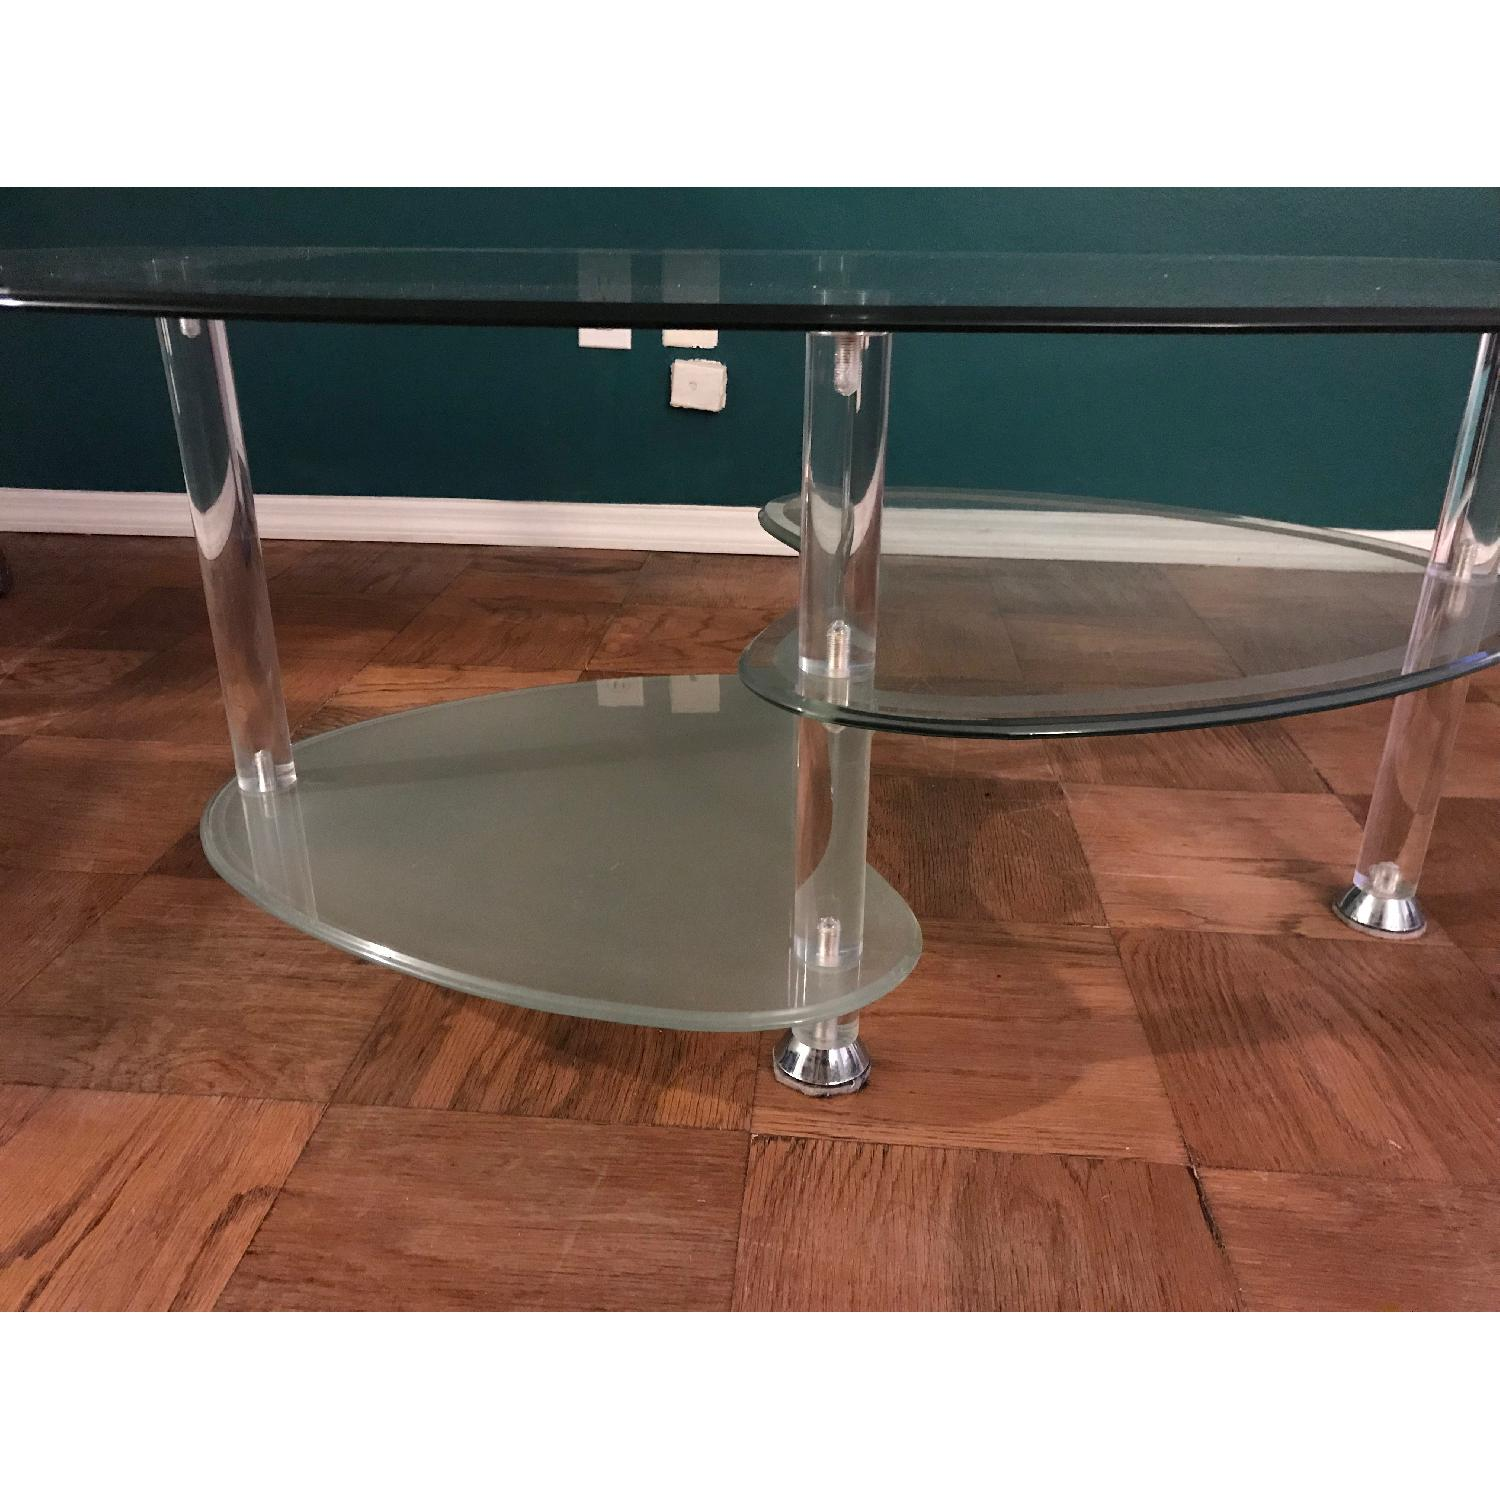 ... Modern Oval Tempered Glass Coffee Table 0 ...